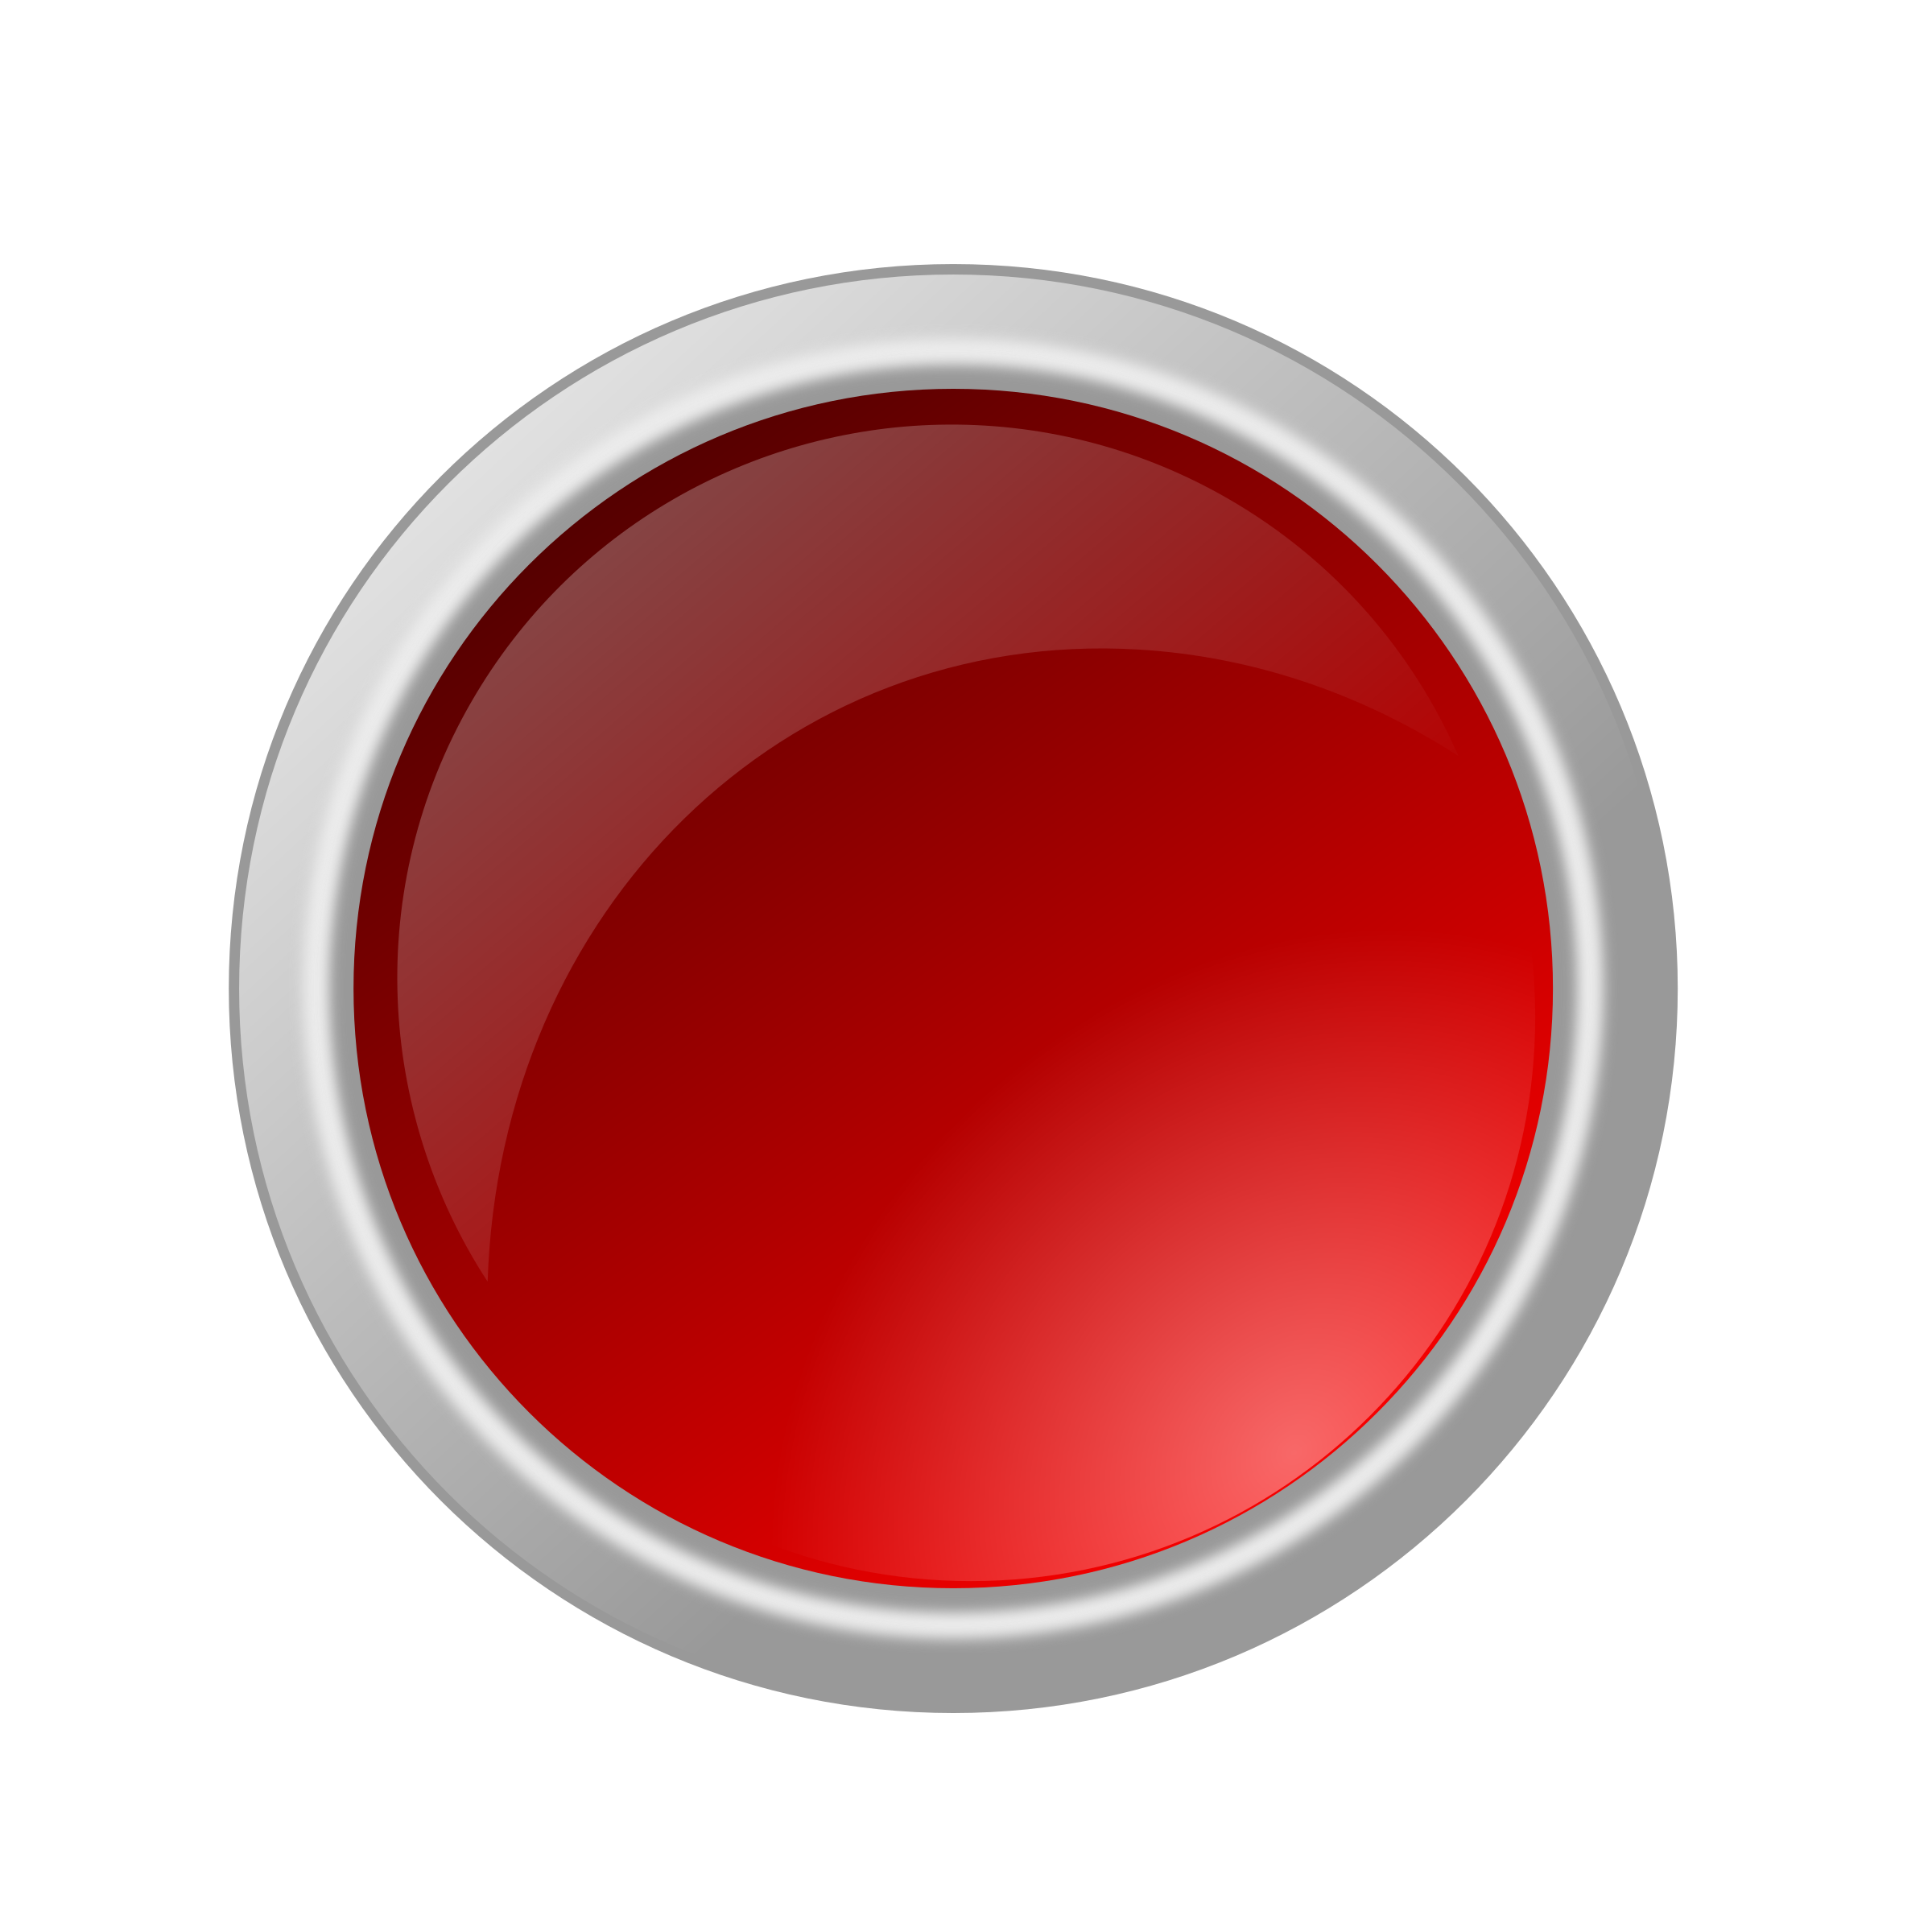 2400x2400 Button Clipart Red Button